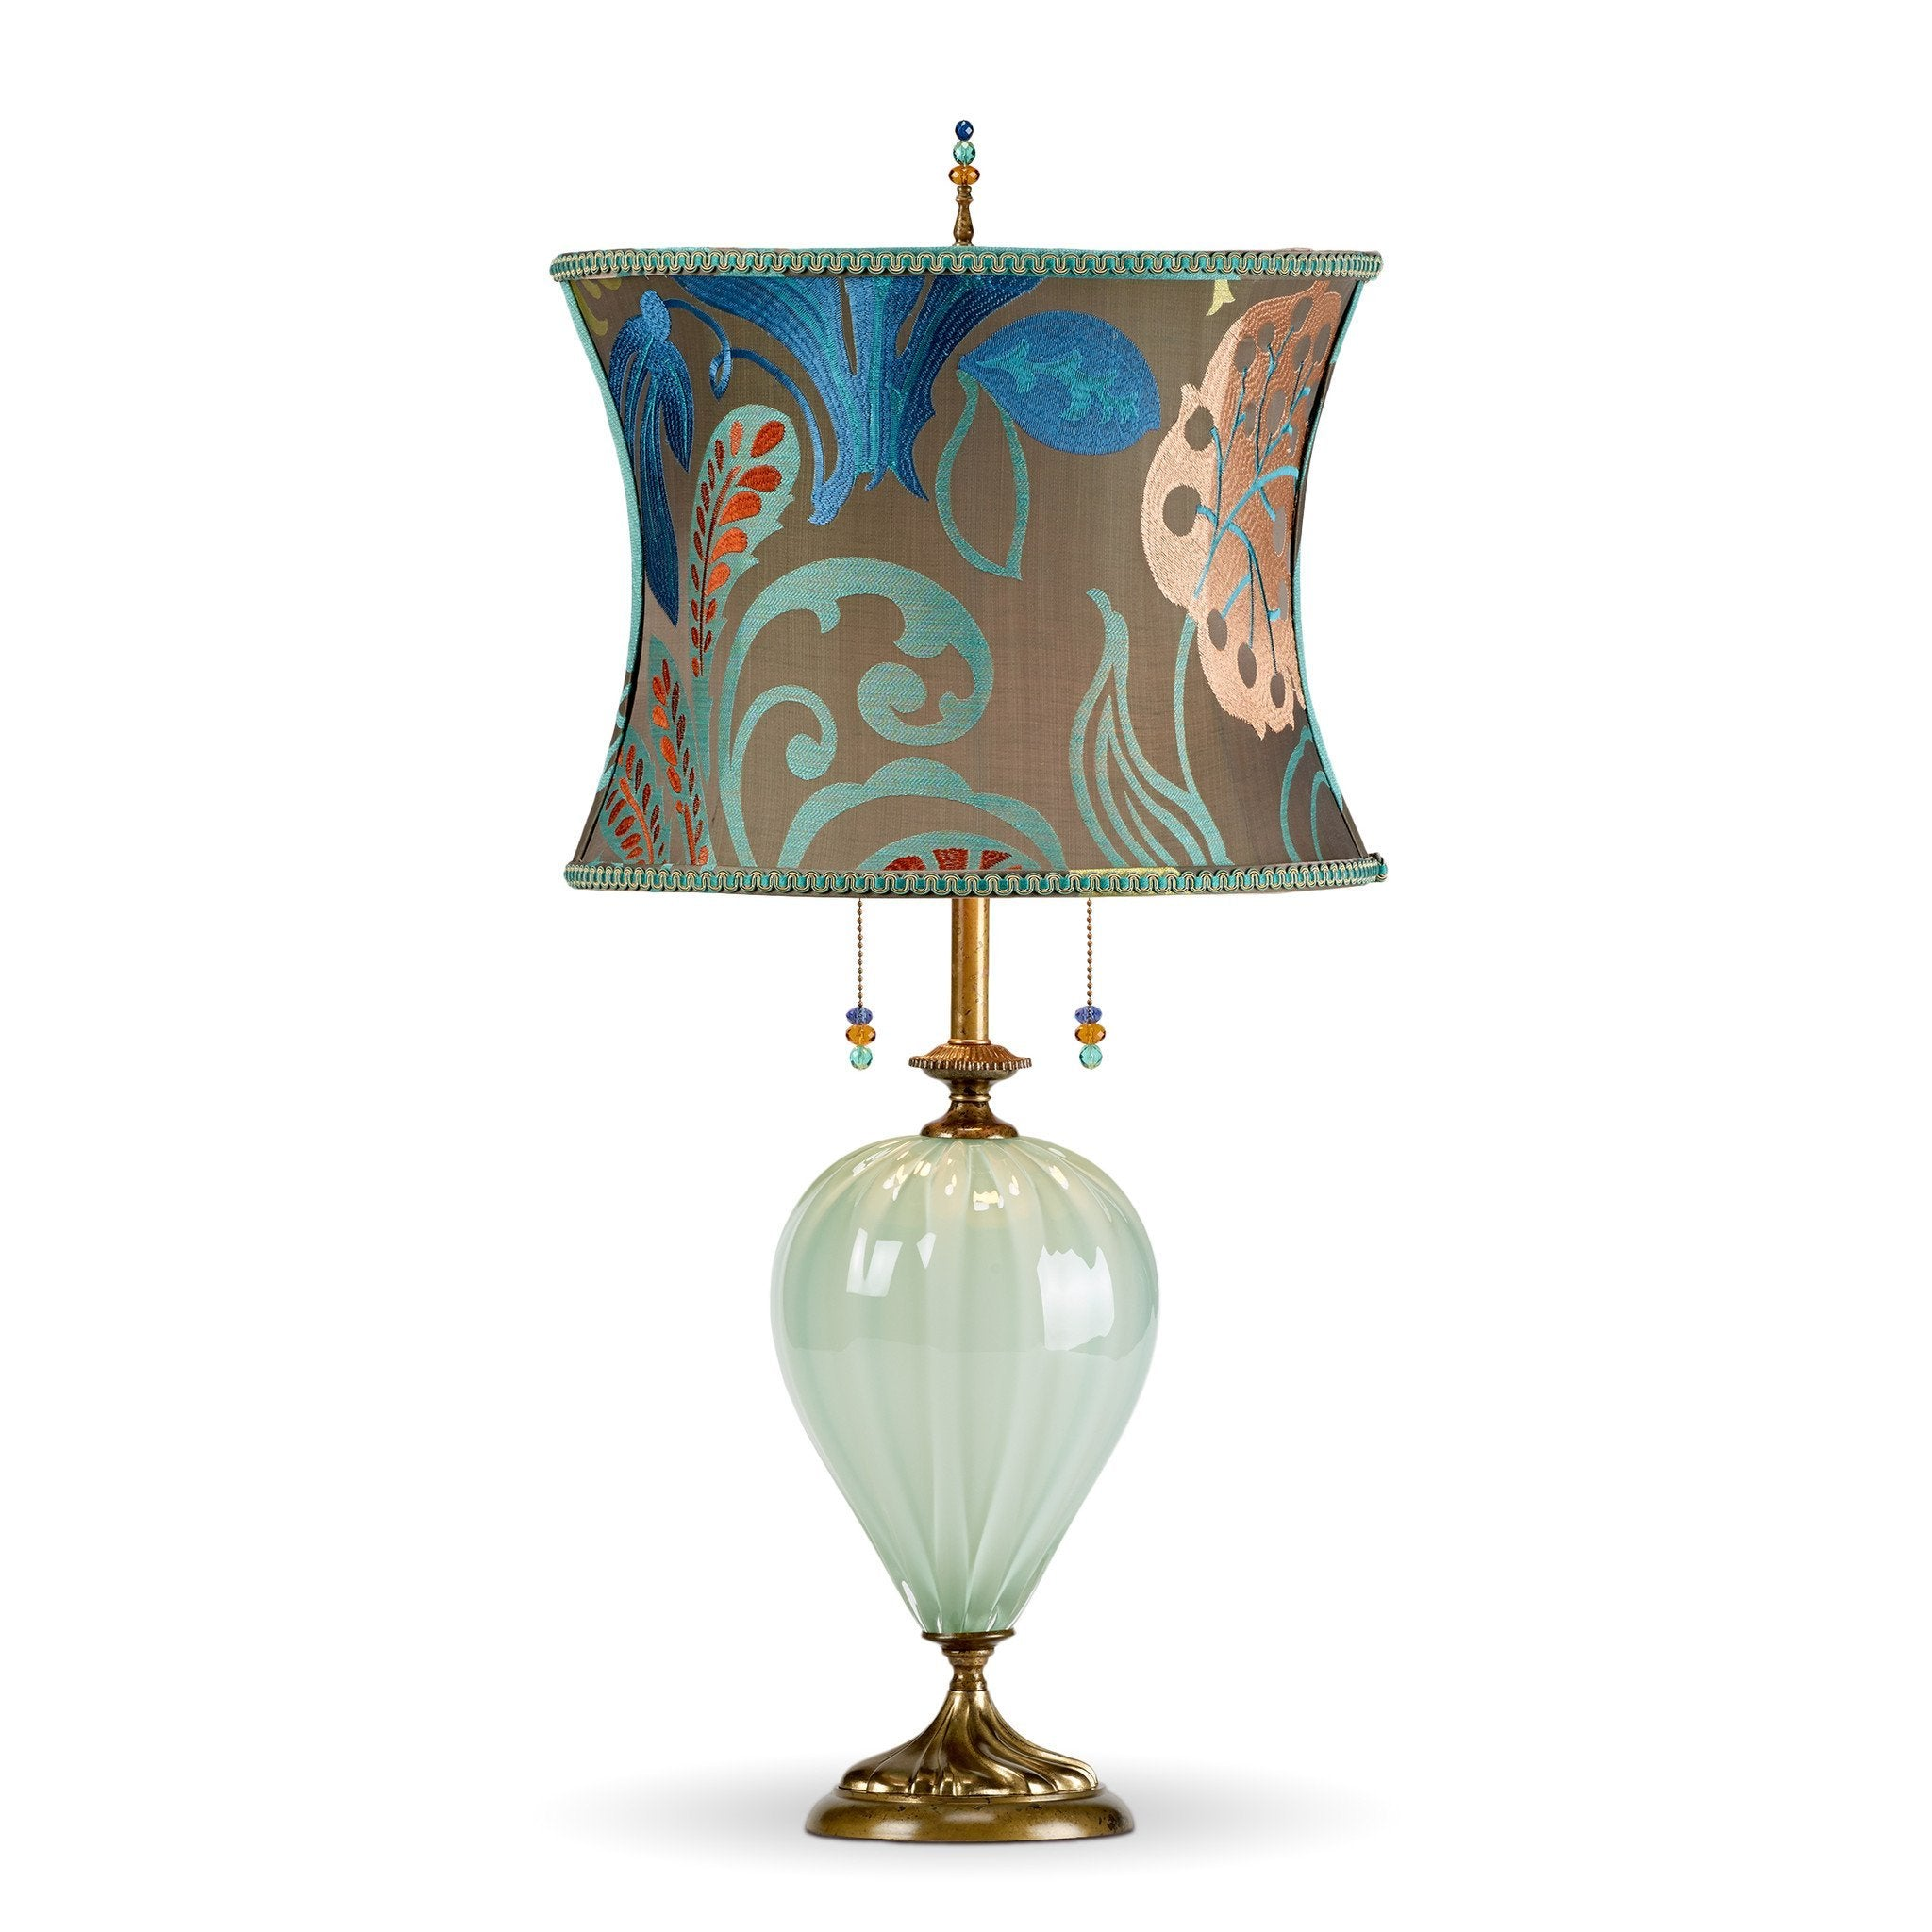 Kristen Table Lamp Kinzig Design Gray Blue Green Peach Blown Glass Silk Shade Sweetheart Gallery Contemporary Craft Gallery Fine American Craft Art Design Handmade Home Personal Accessories